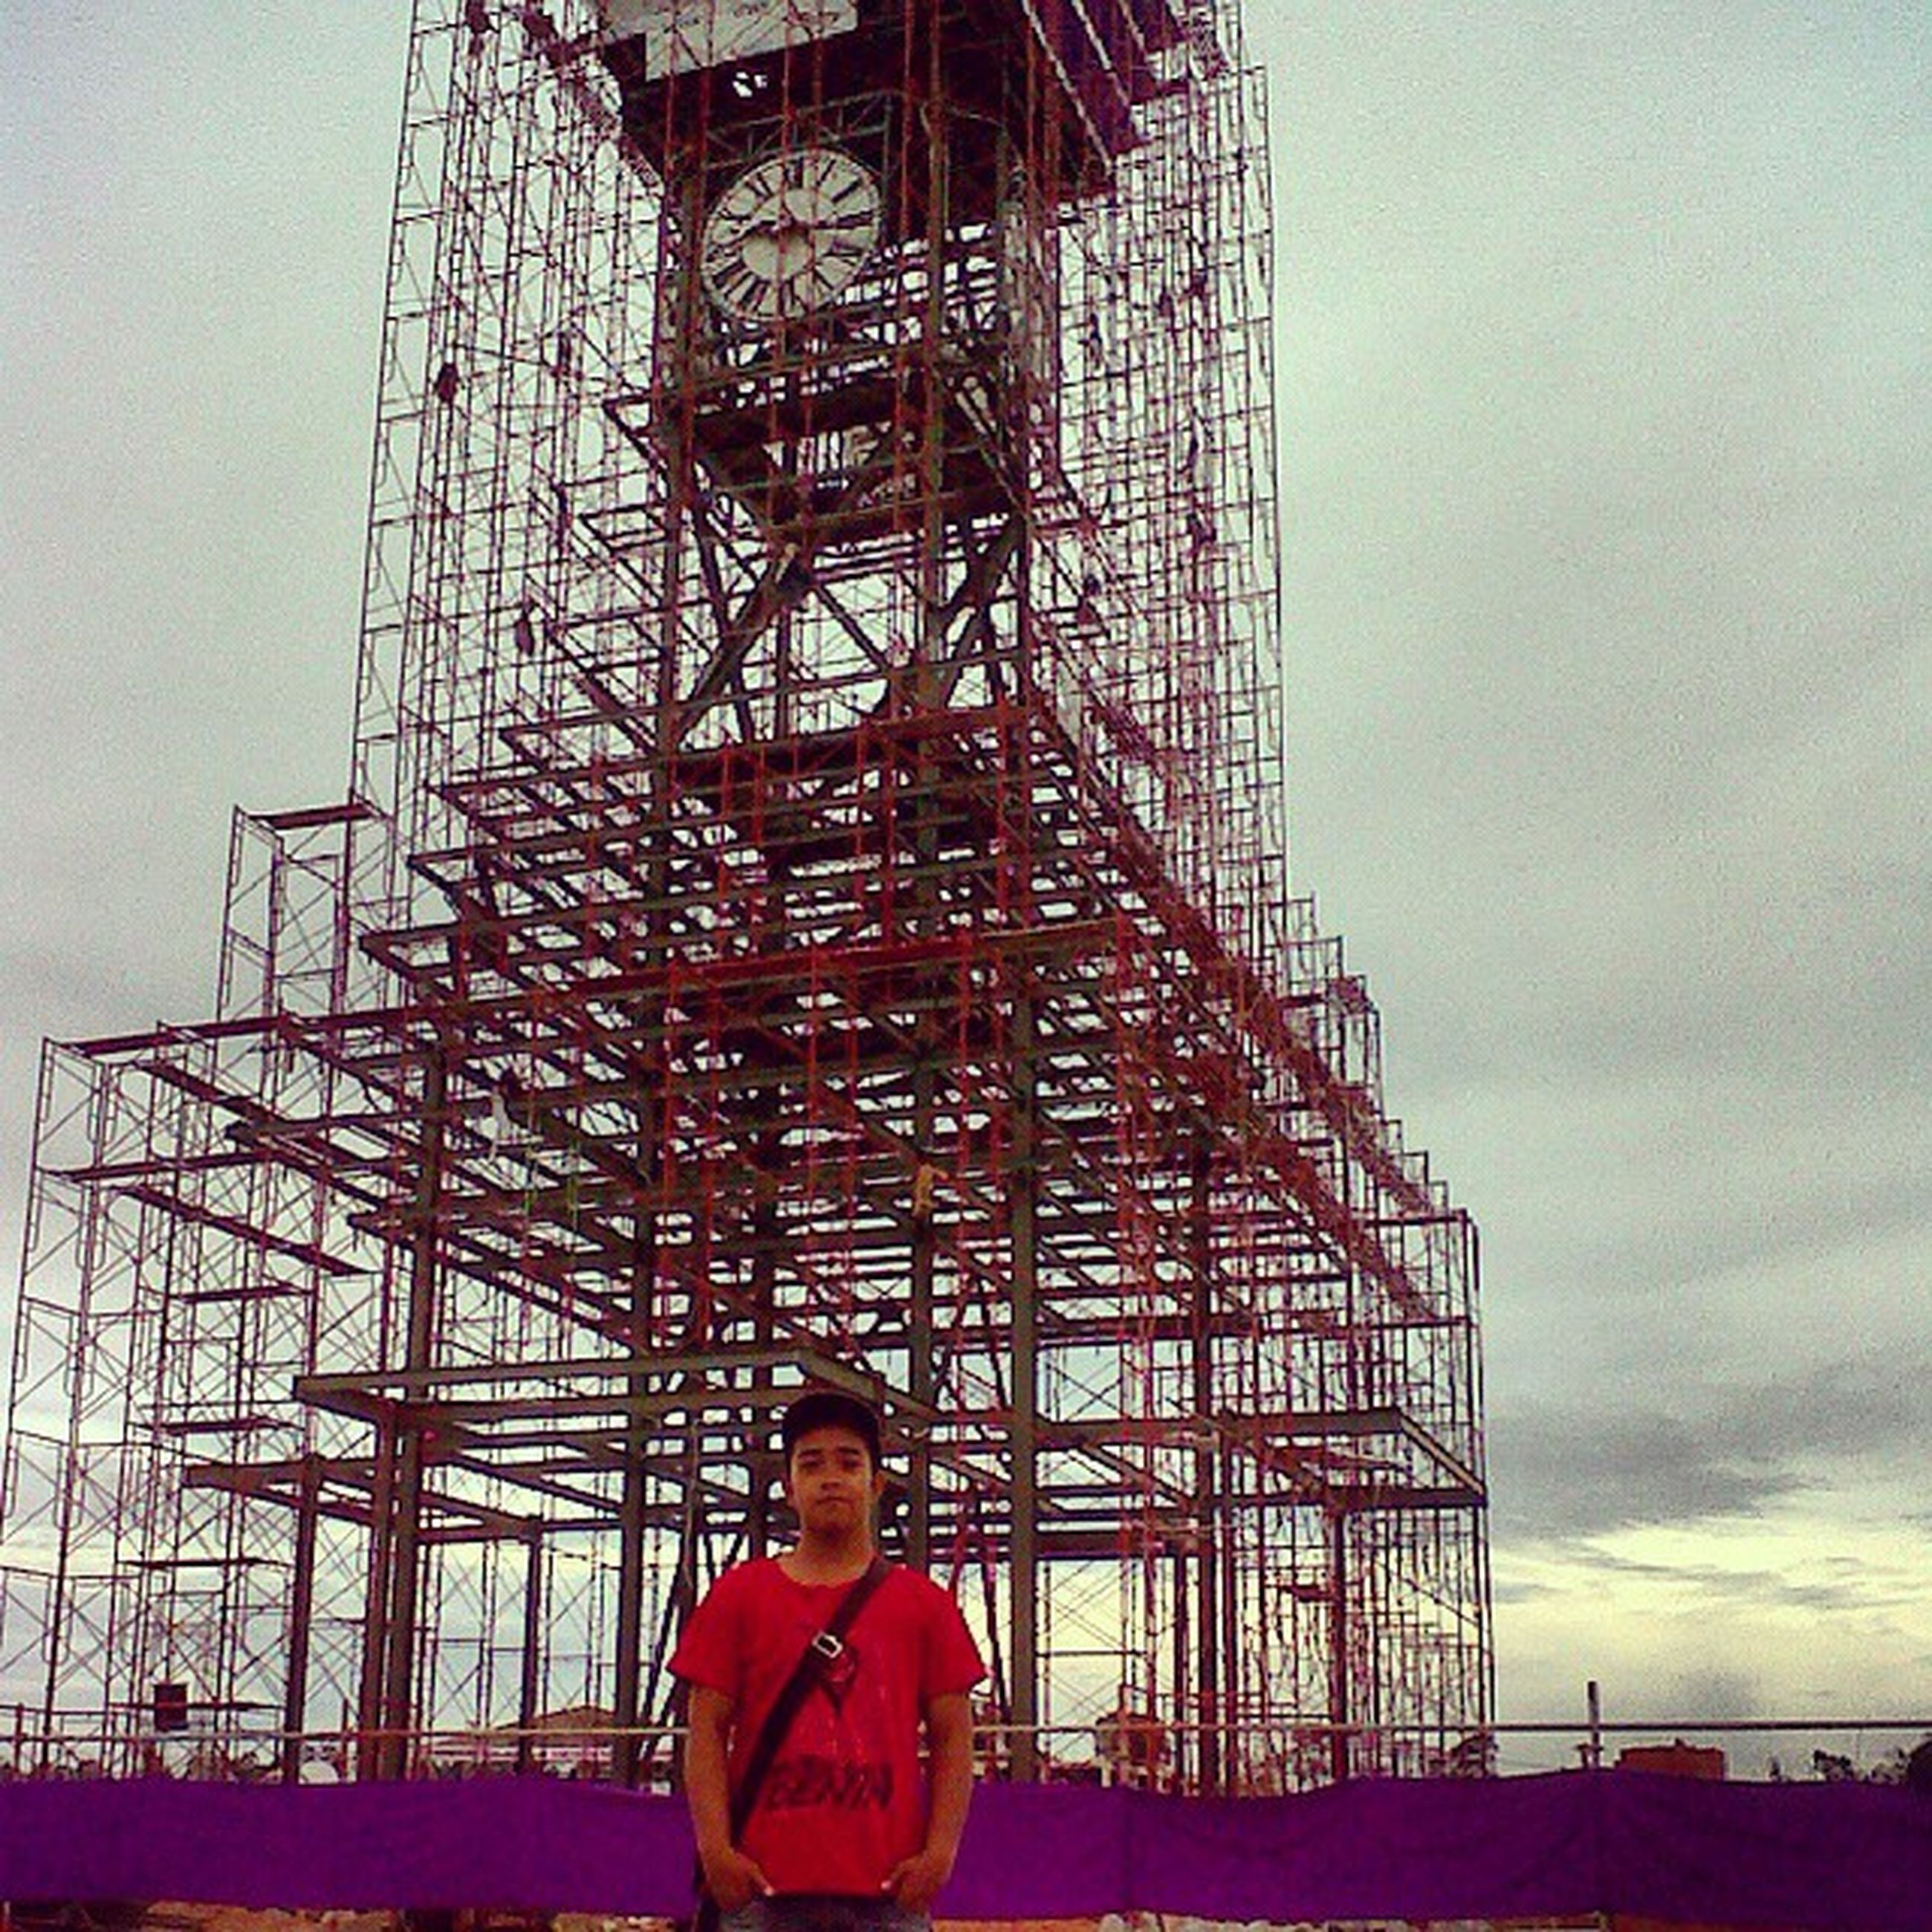 lifestyles, leisure activity, built structure, architecture, sky, rear view, standing, building exterior, men, casual clothing, low angle view, childhood, amusement park, person, ferris wheel, amusement park ride, arts culture and entertainment